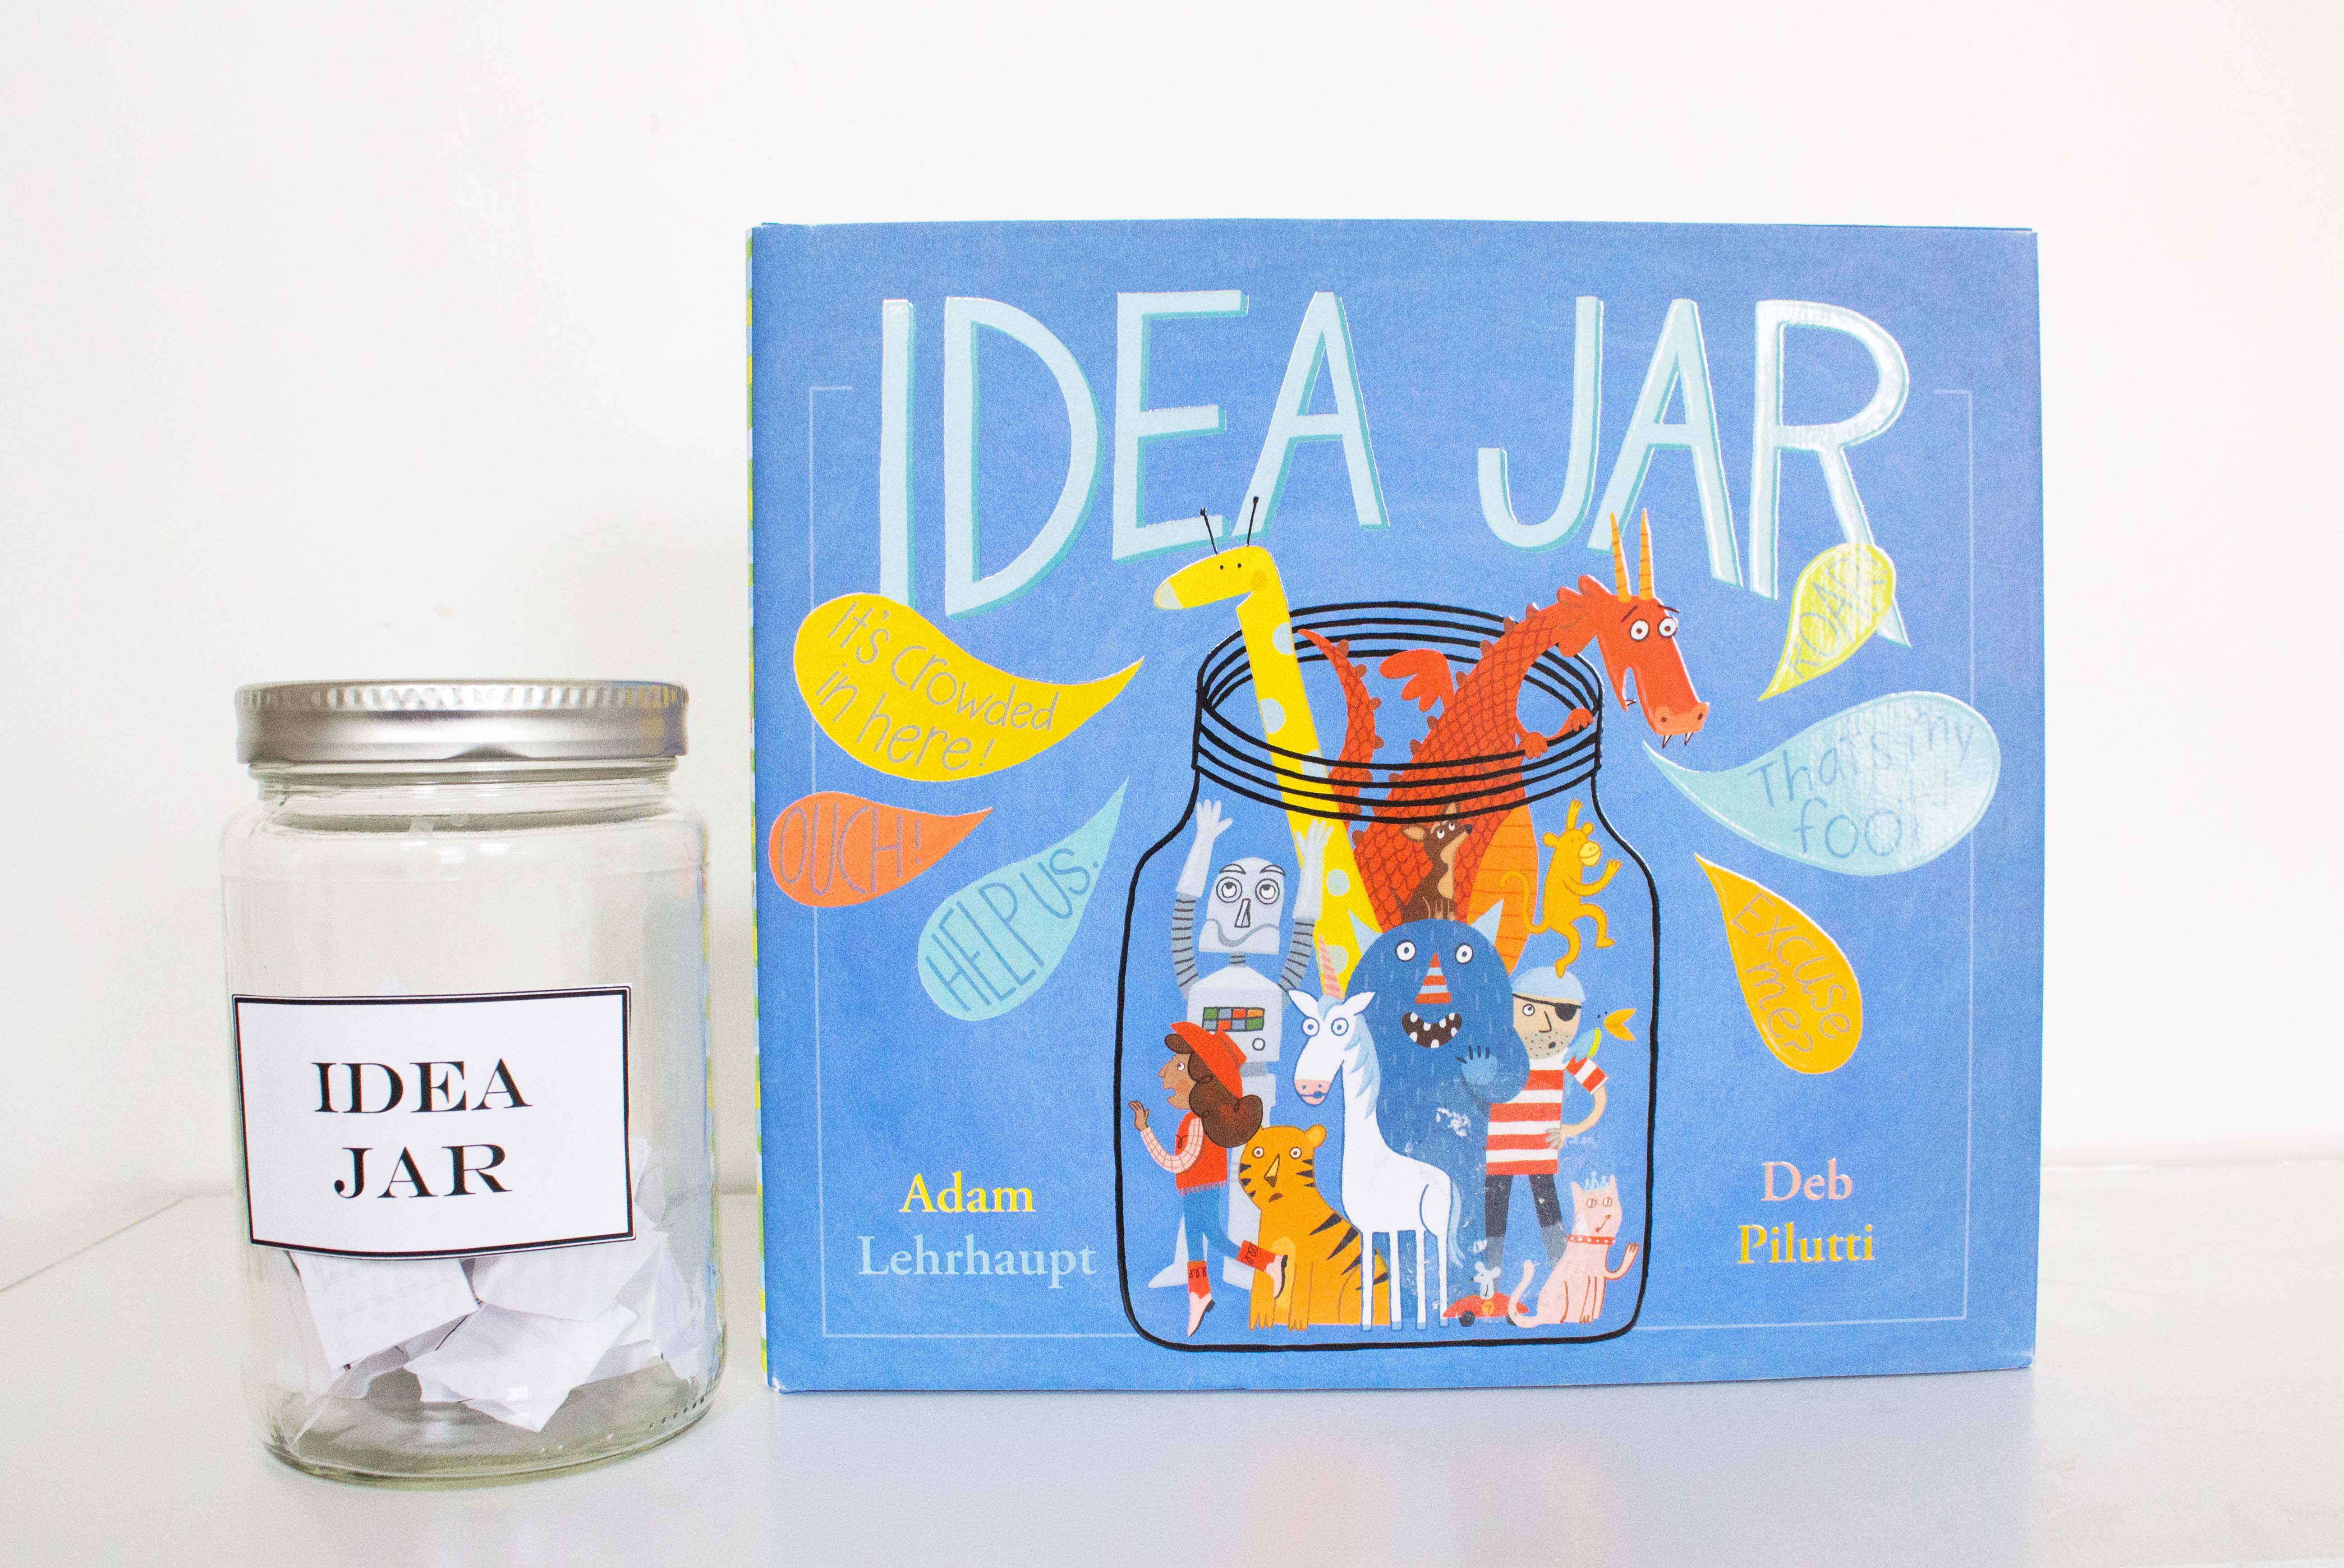 Idea Jars For Writing Inspired By Idea Jar Book Nerd Mommy